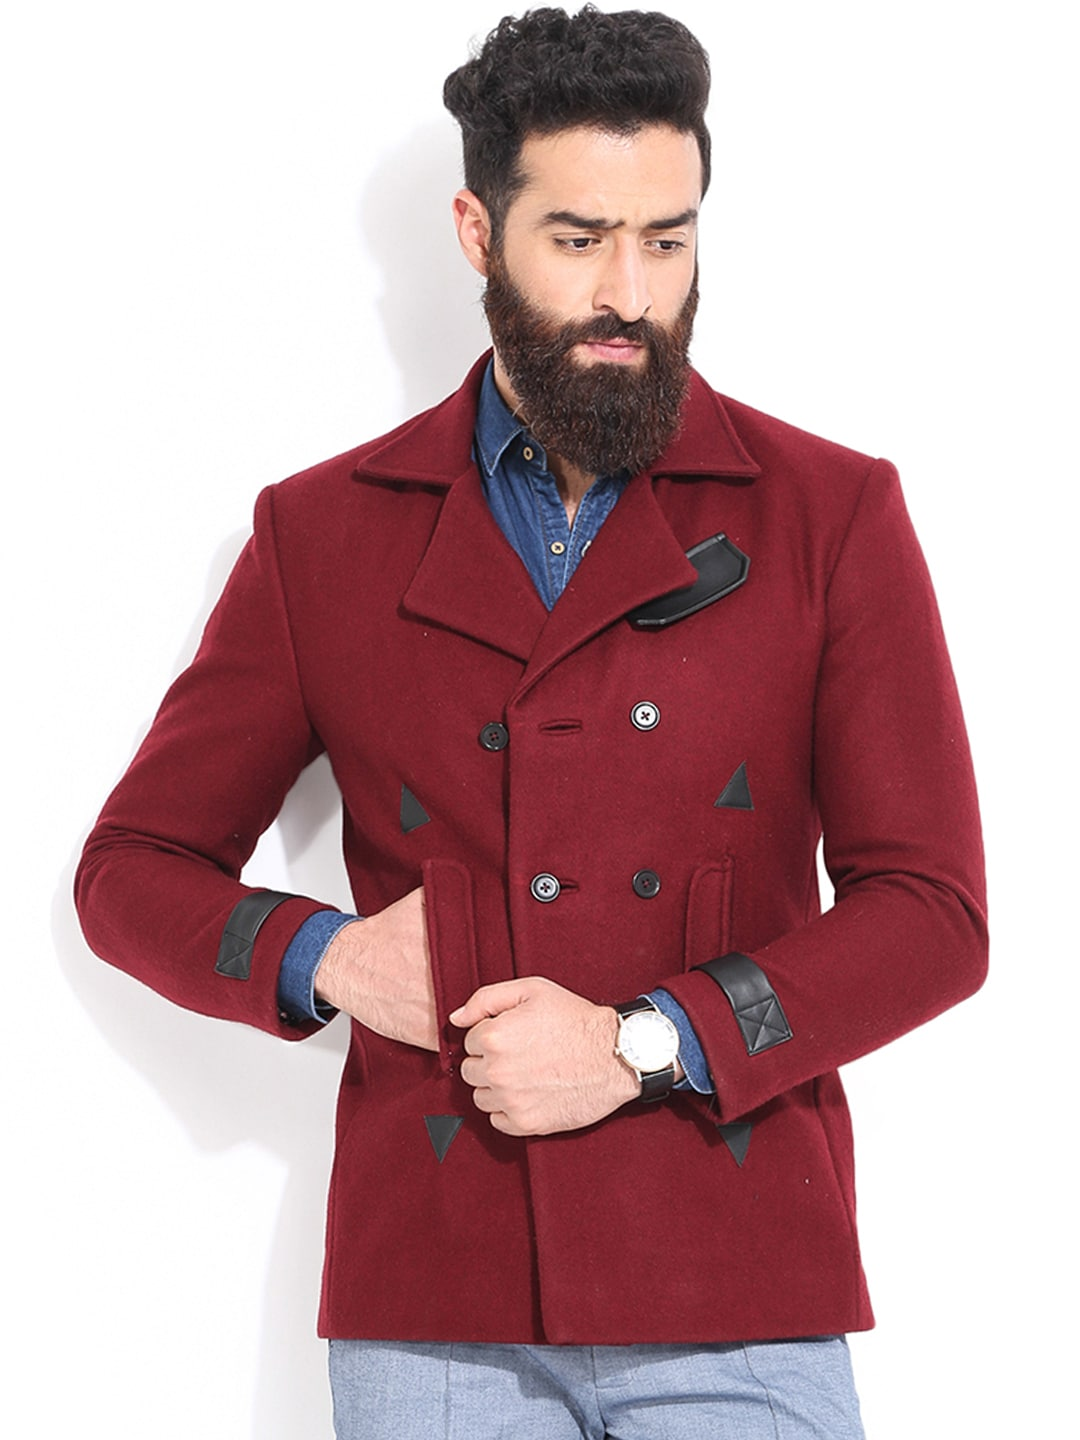 MR BUTTON Maroon Double-Breasted Tailored Jacket image